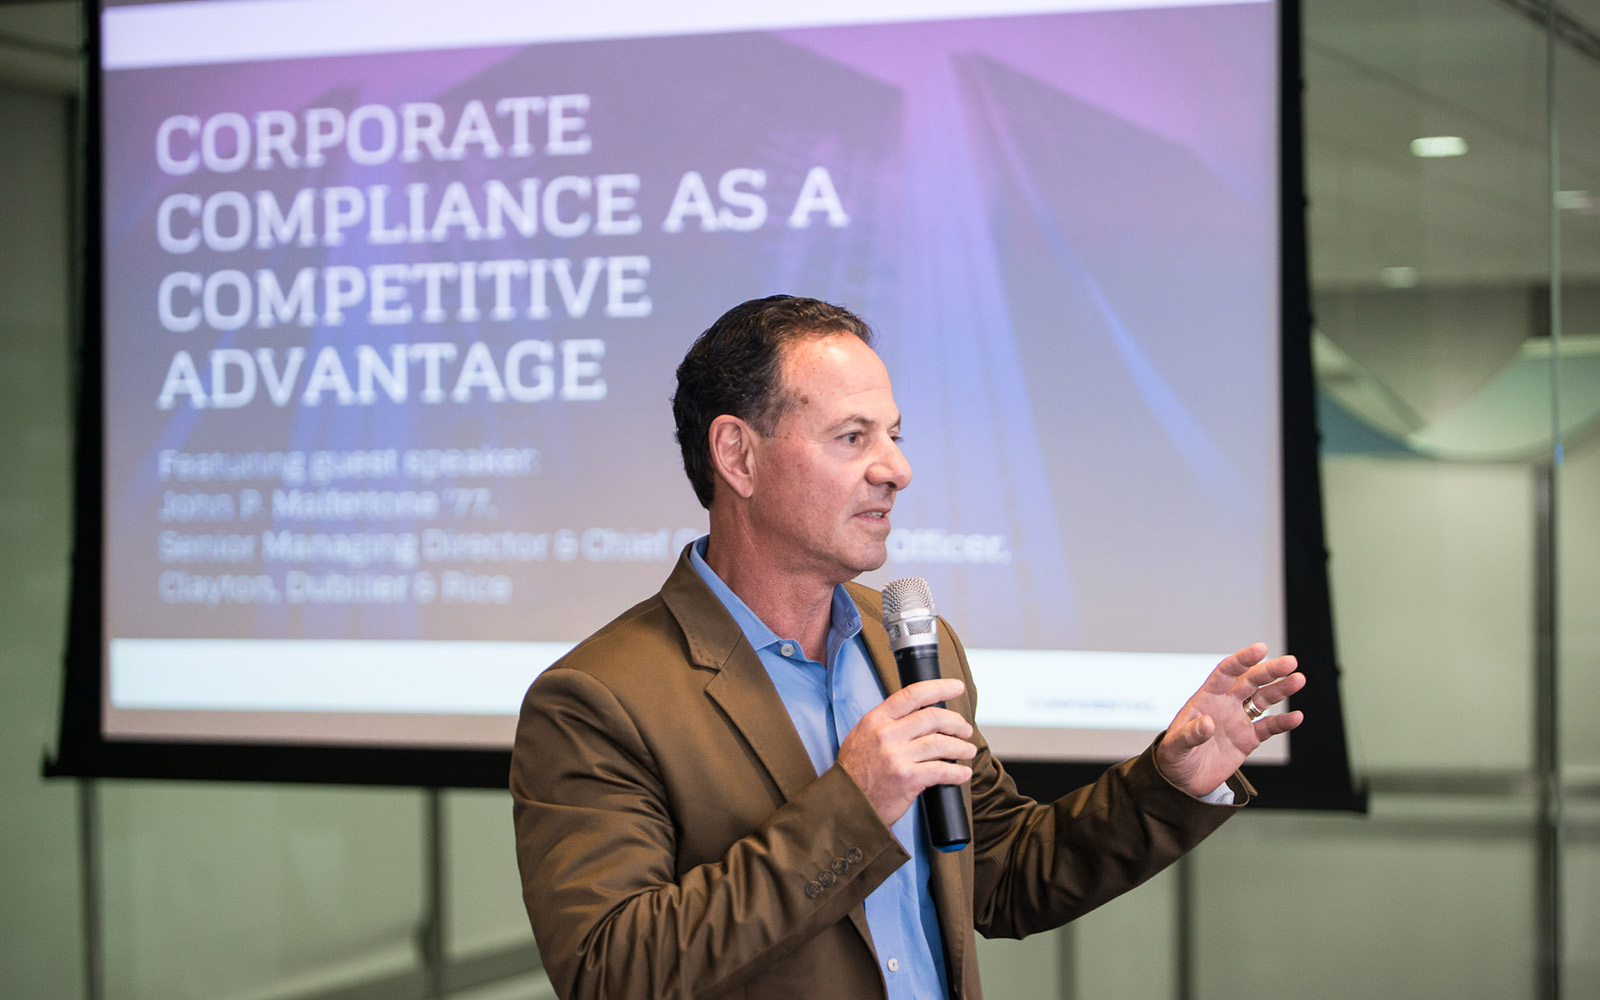 UConn Alum Malfettone Speaks About Corporate Compliance as a Competitive Advantage